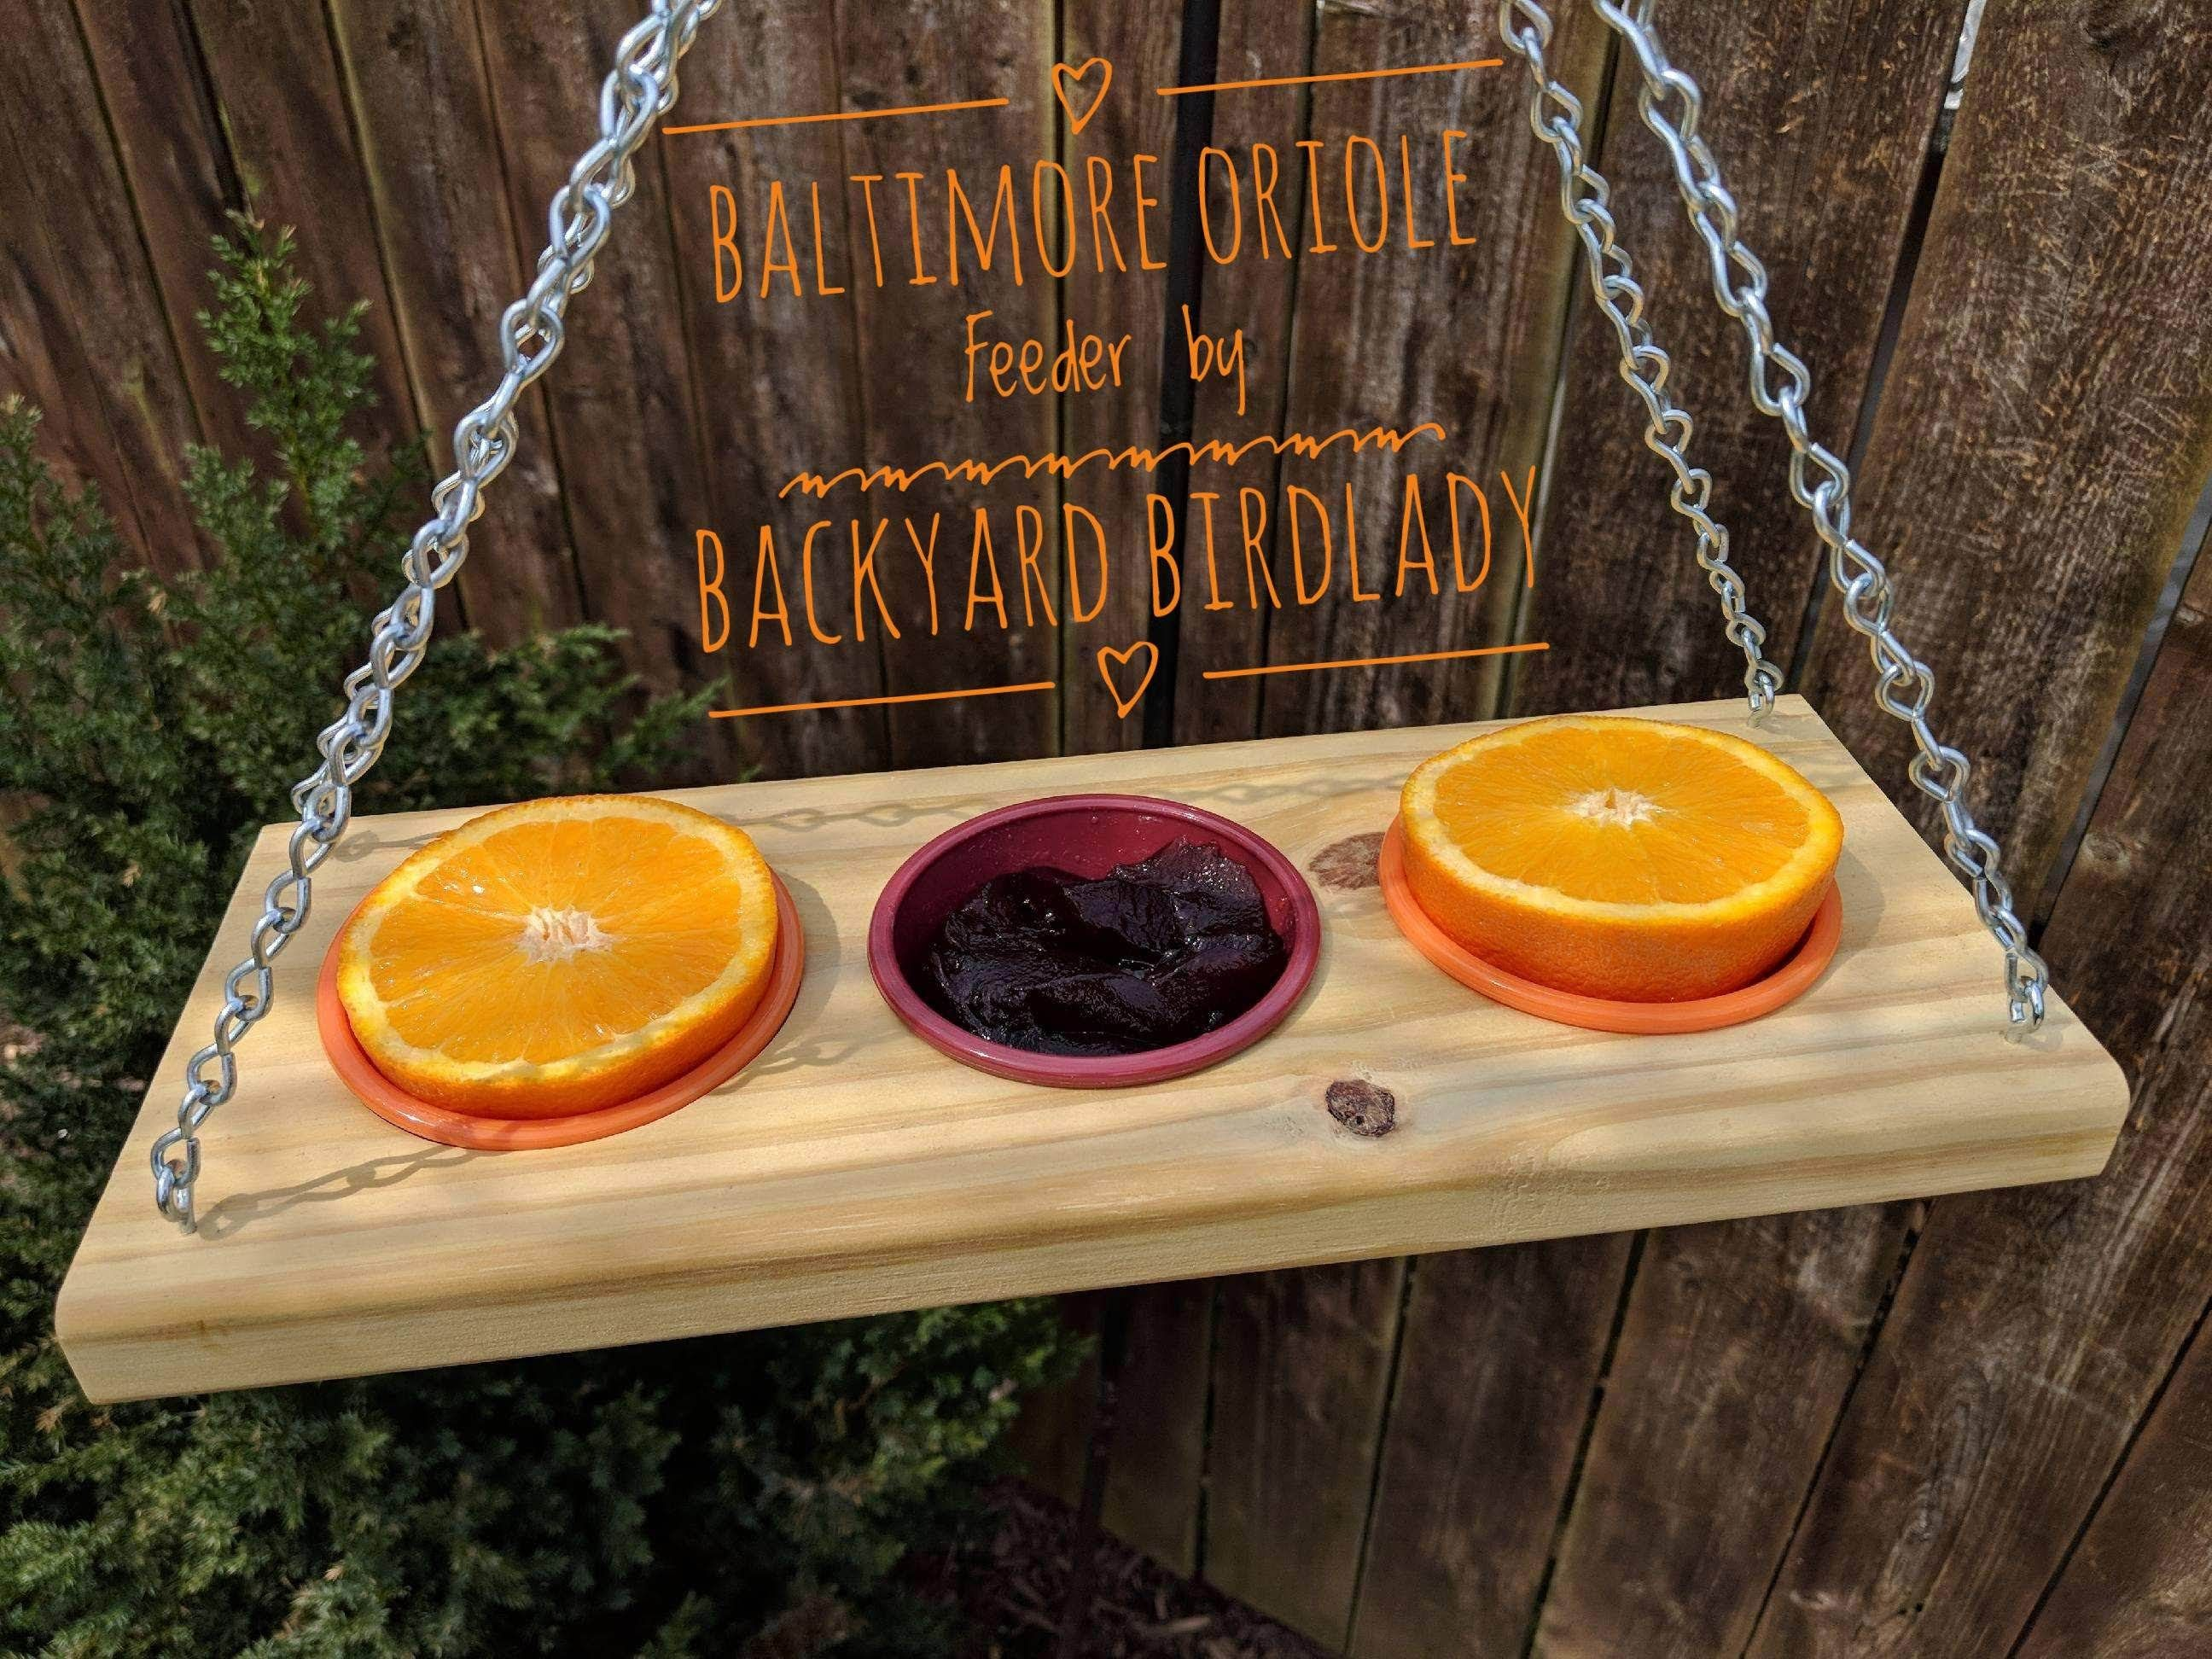 Baltimore orioles love this new oriole feeder order